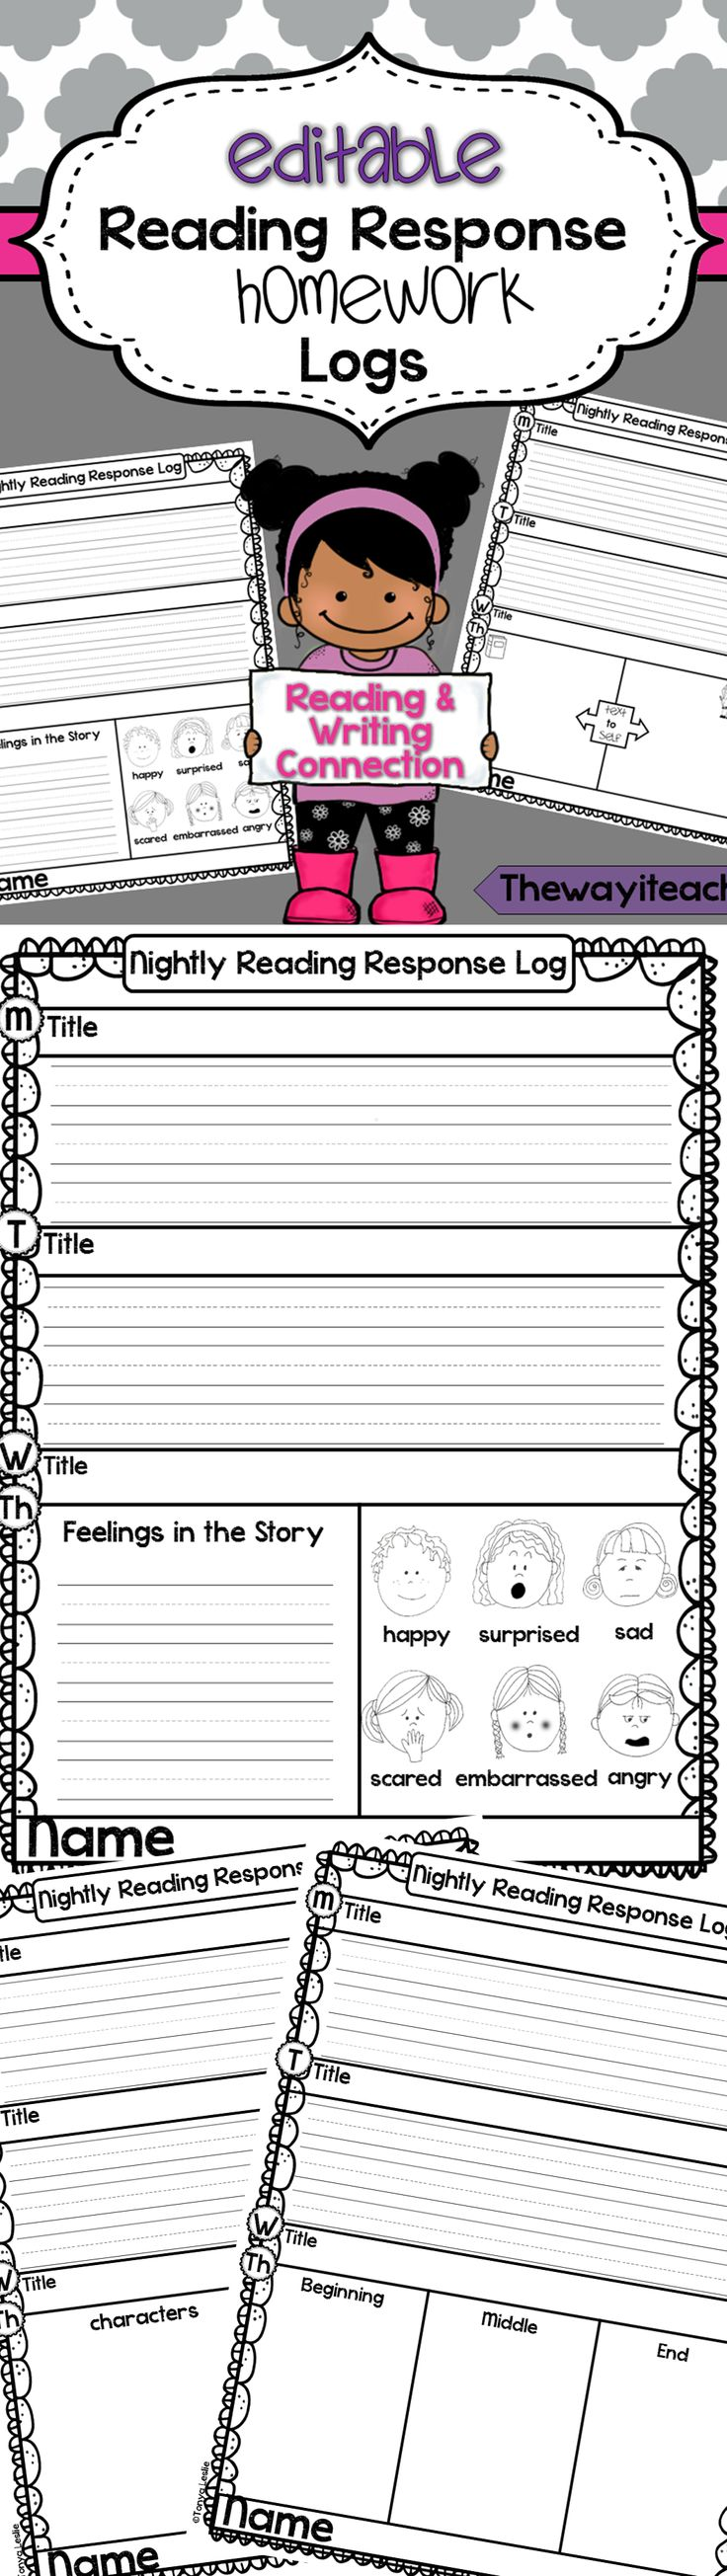 Reading Log: Reading Response Homework Logs. Editable Newsletter Pages